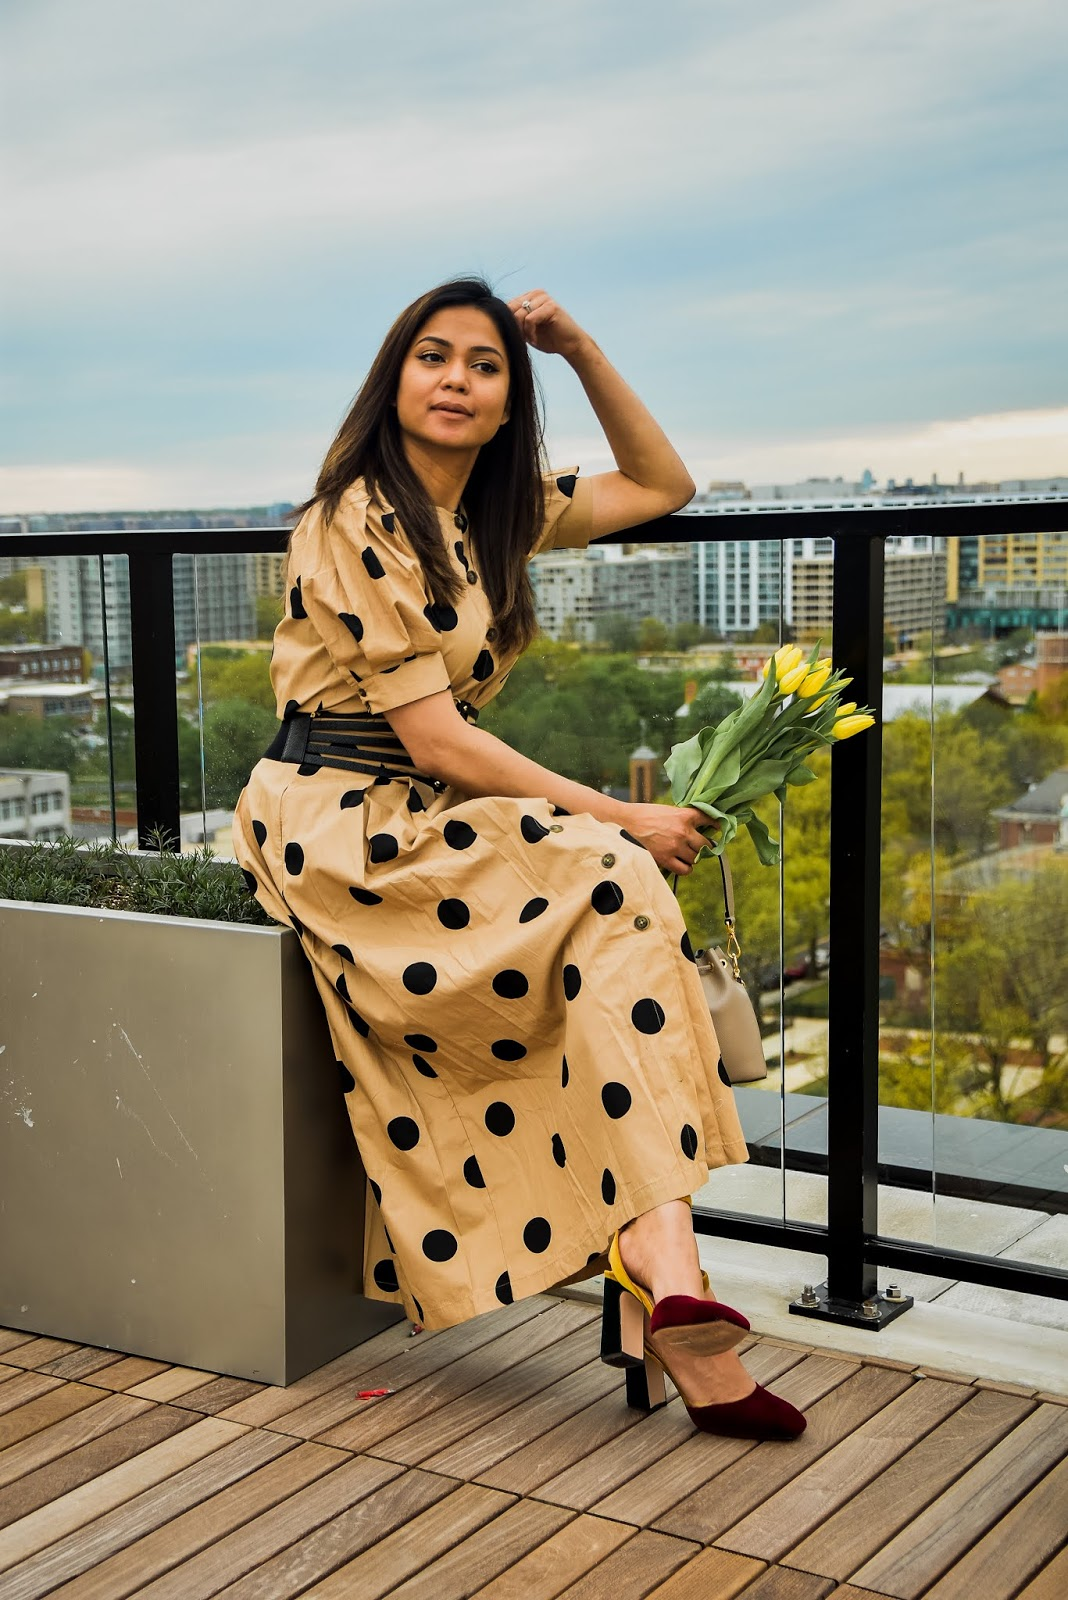 target style polka dot skit, who what wear polka dot skirt, corset belt, fashion, style, dc blogger, myriad musings, polka dot outfit, spring style, velvet heels, indian fashion blogger, saumya shiohare.